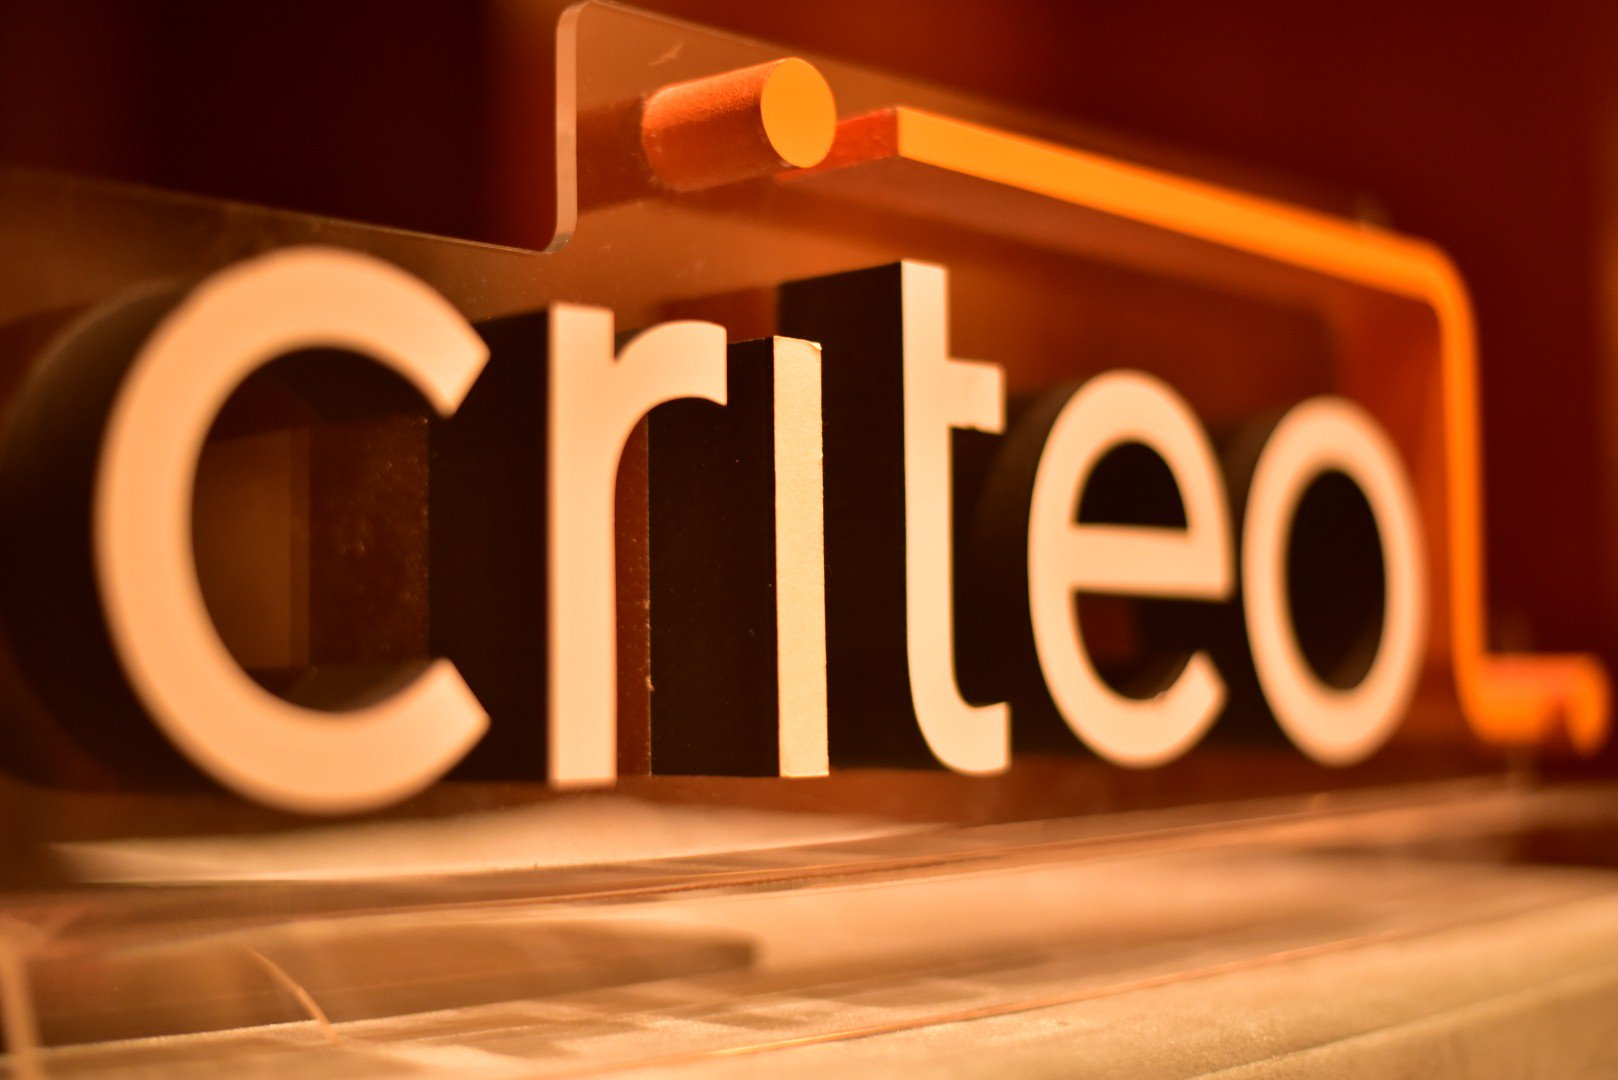 Criteo: AI & Data Sharing Can Help Publishers & Retailers